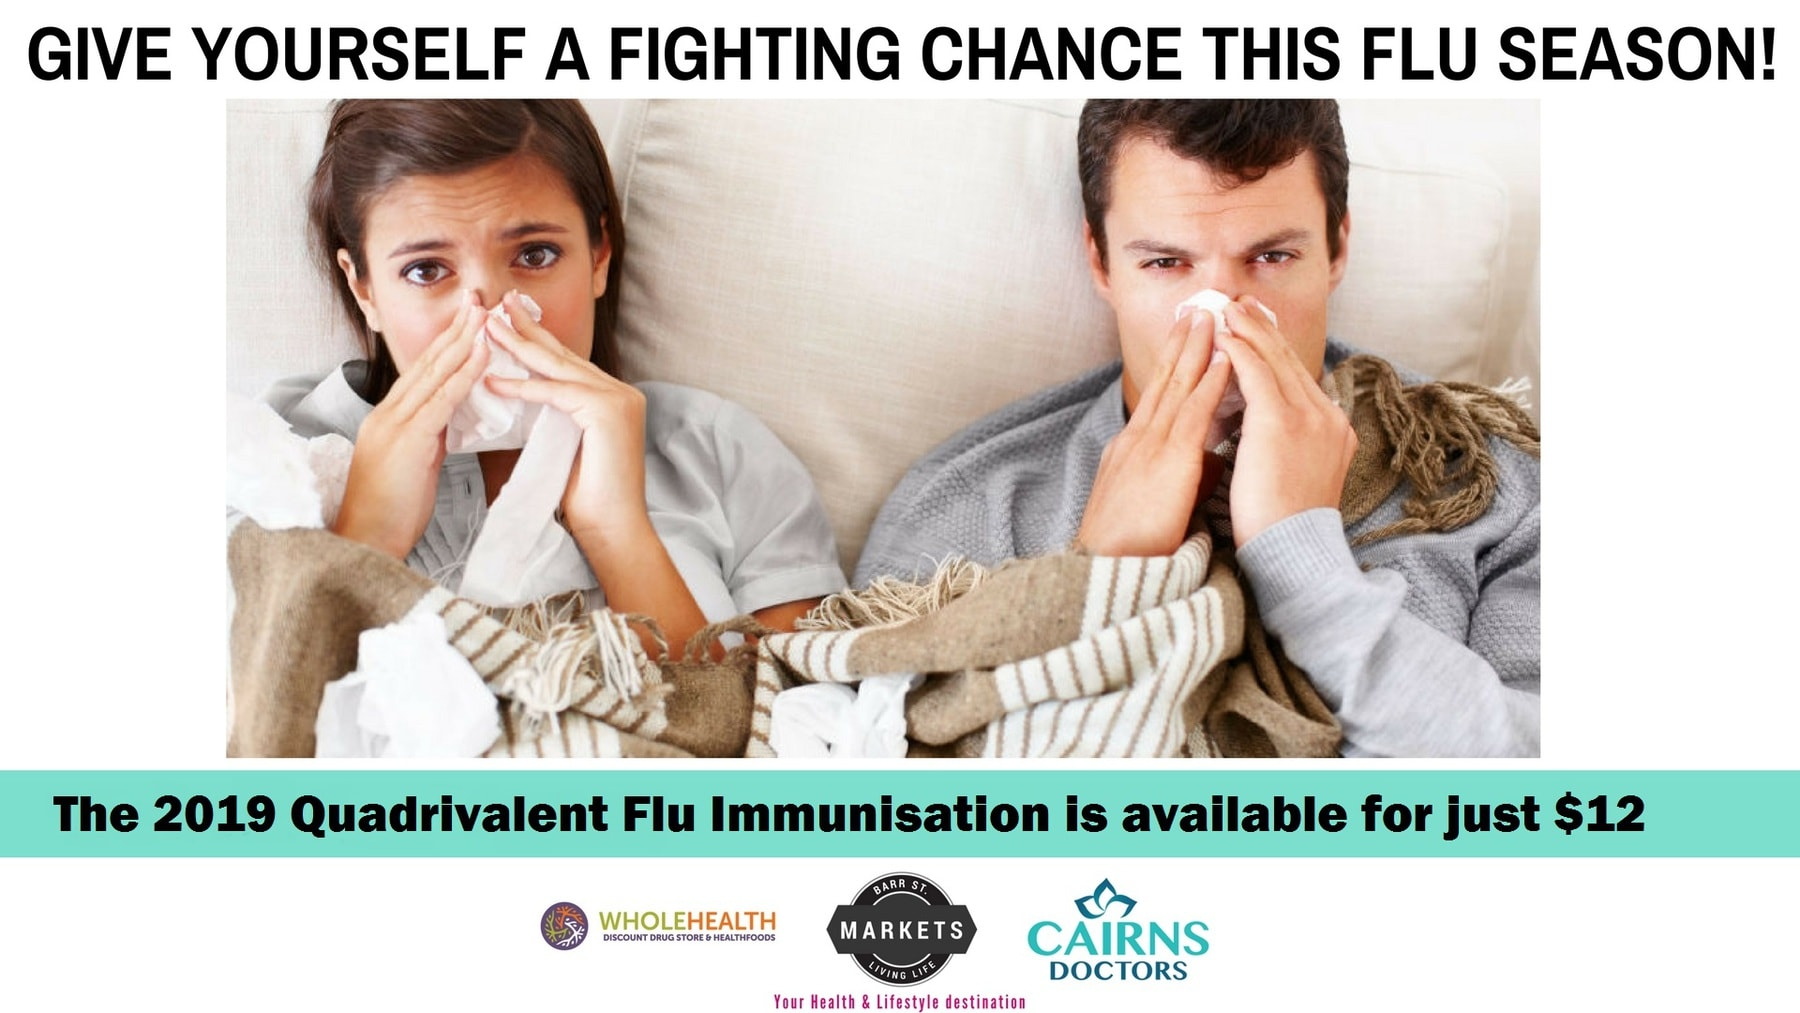 2019 Flu Season – Cairns Doctors